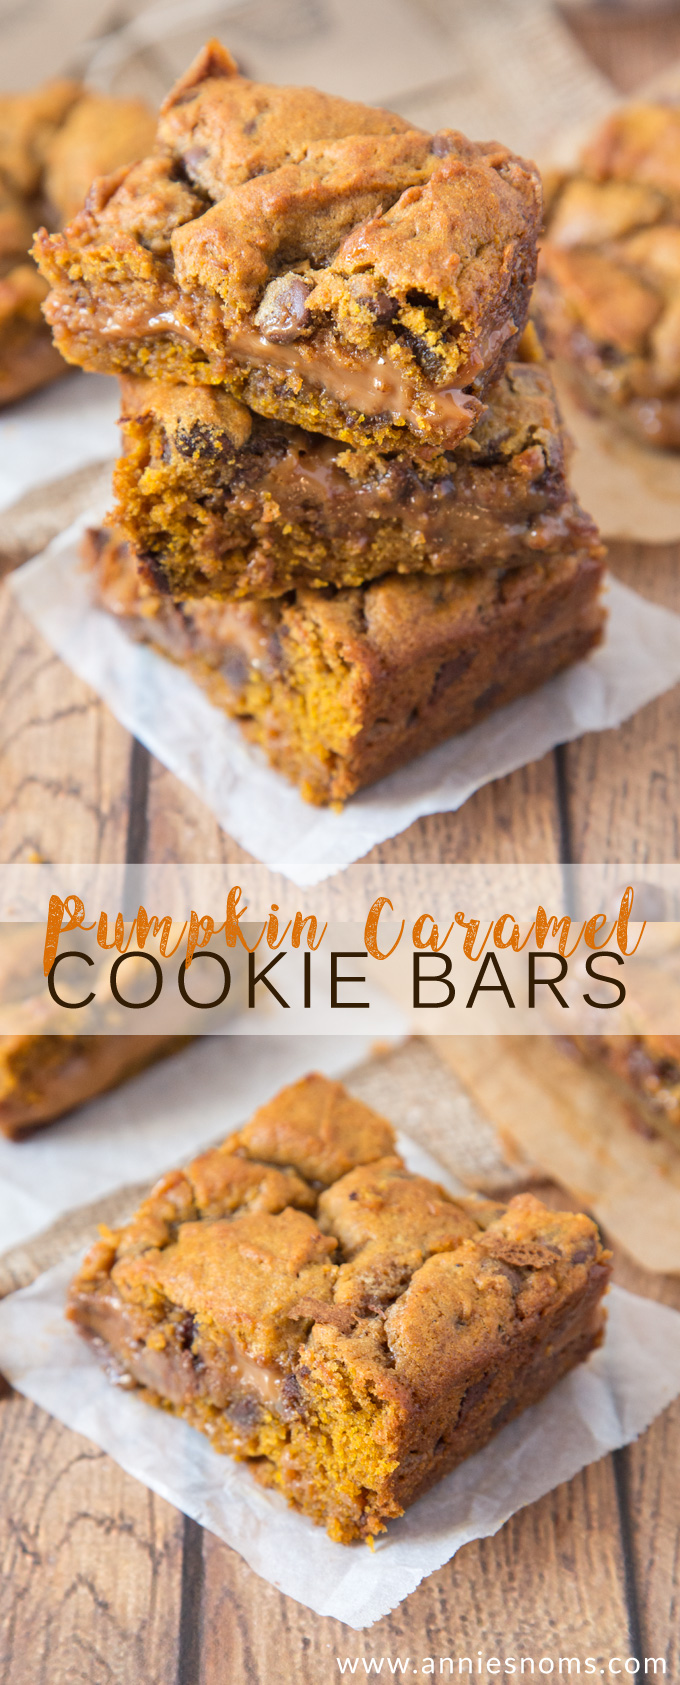 These Pumpkin Caramel Cookie Bars are sinfully good! Chewy Pumpkin cookie dough layered with thick caramel and cut into squares; you'll not be able to say no to them!